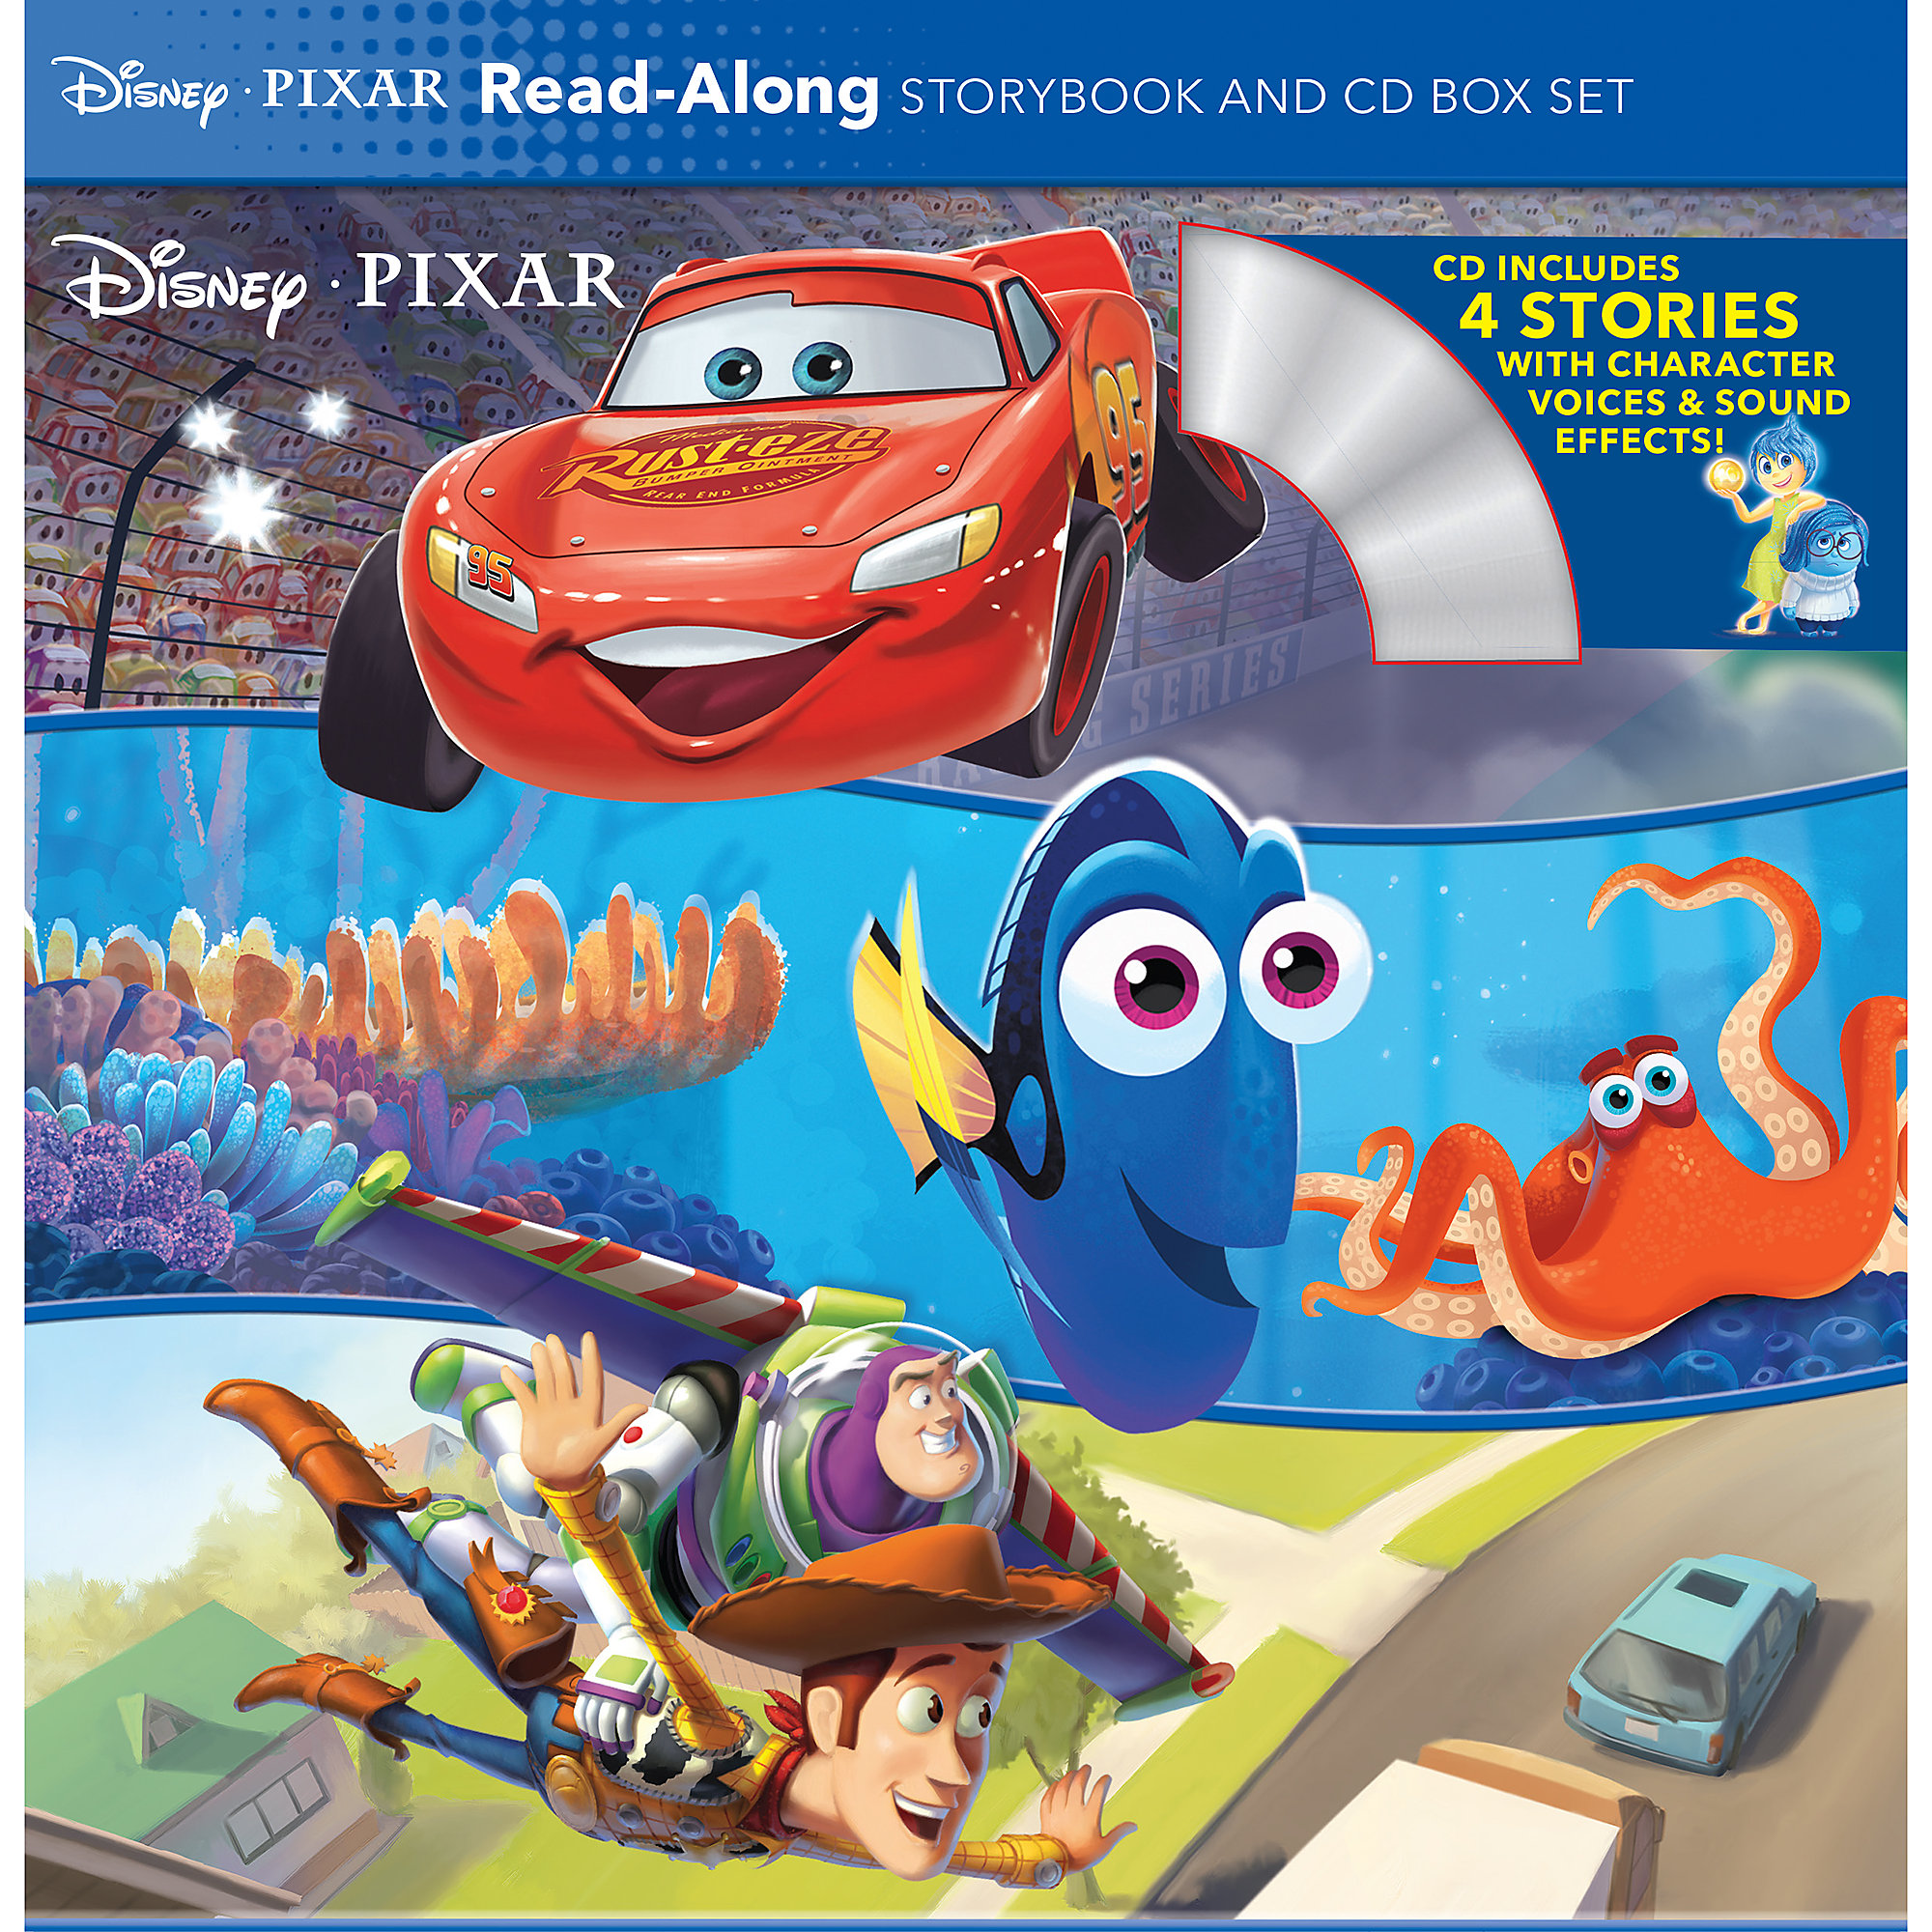 Disney•PIXAR Read-Along Storybook and CD Box Set